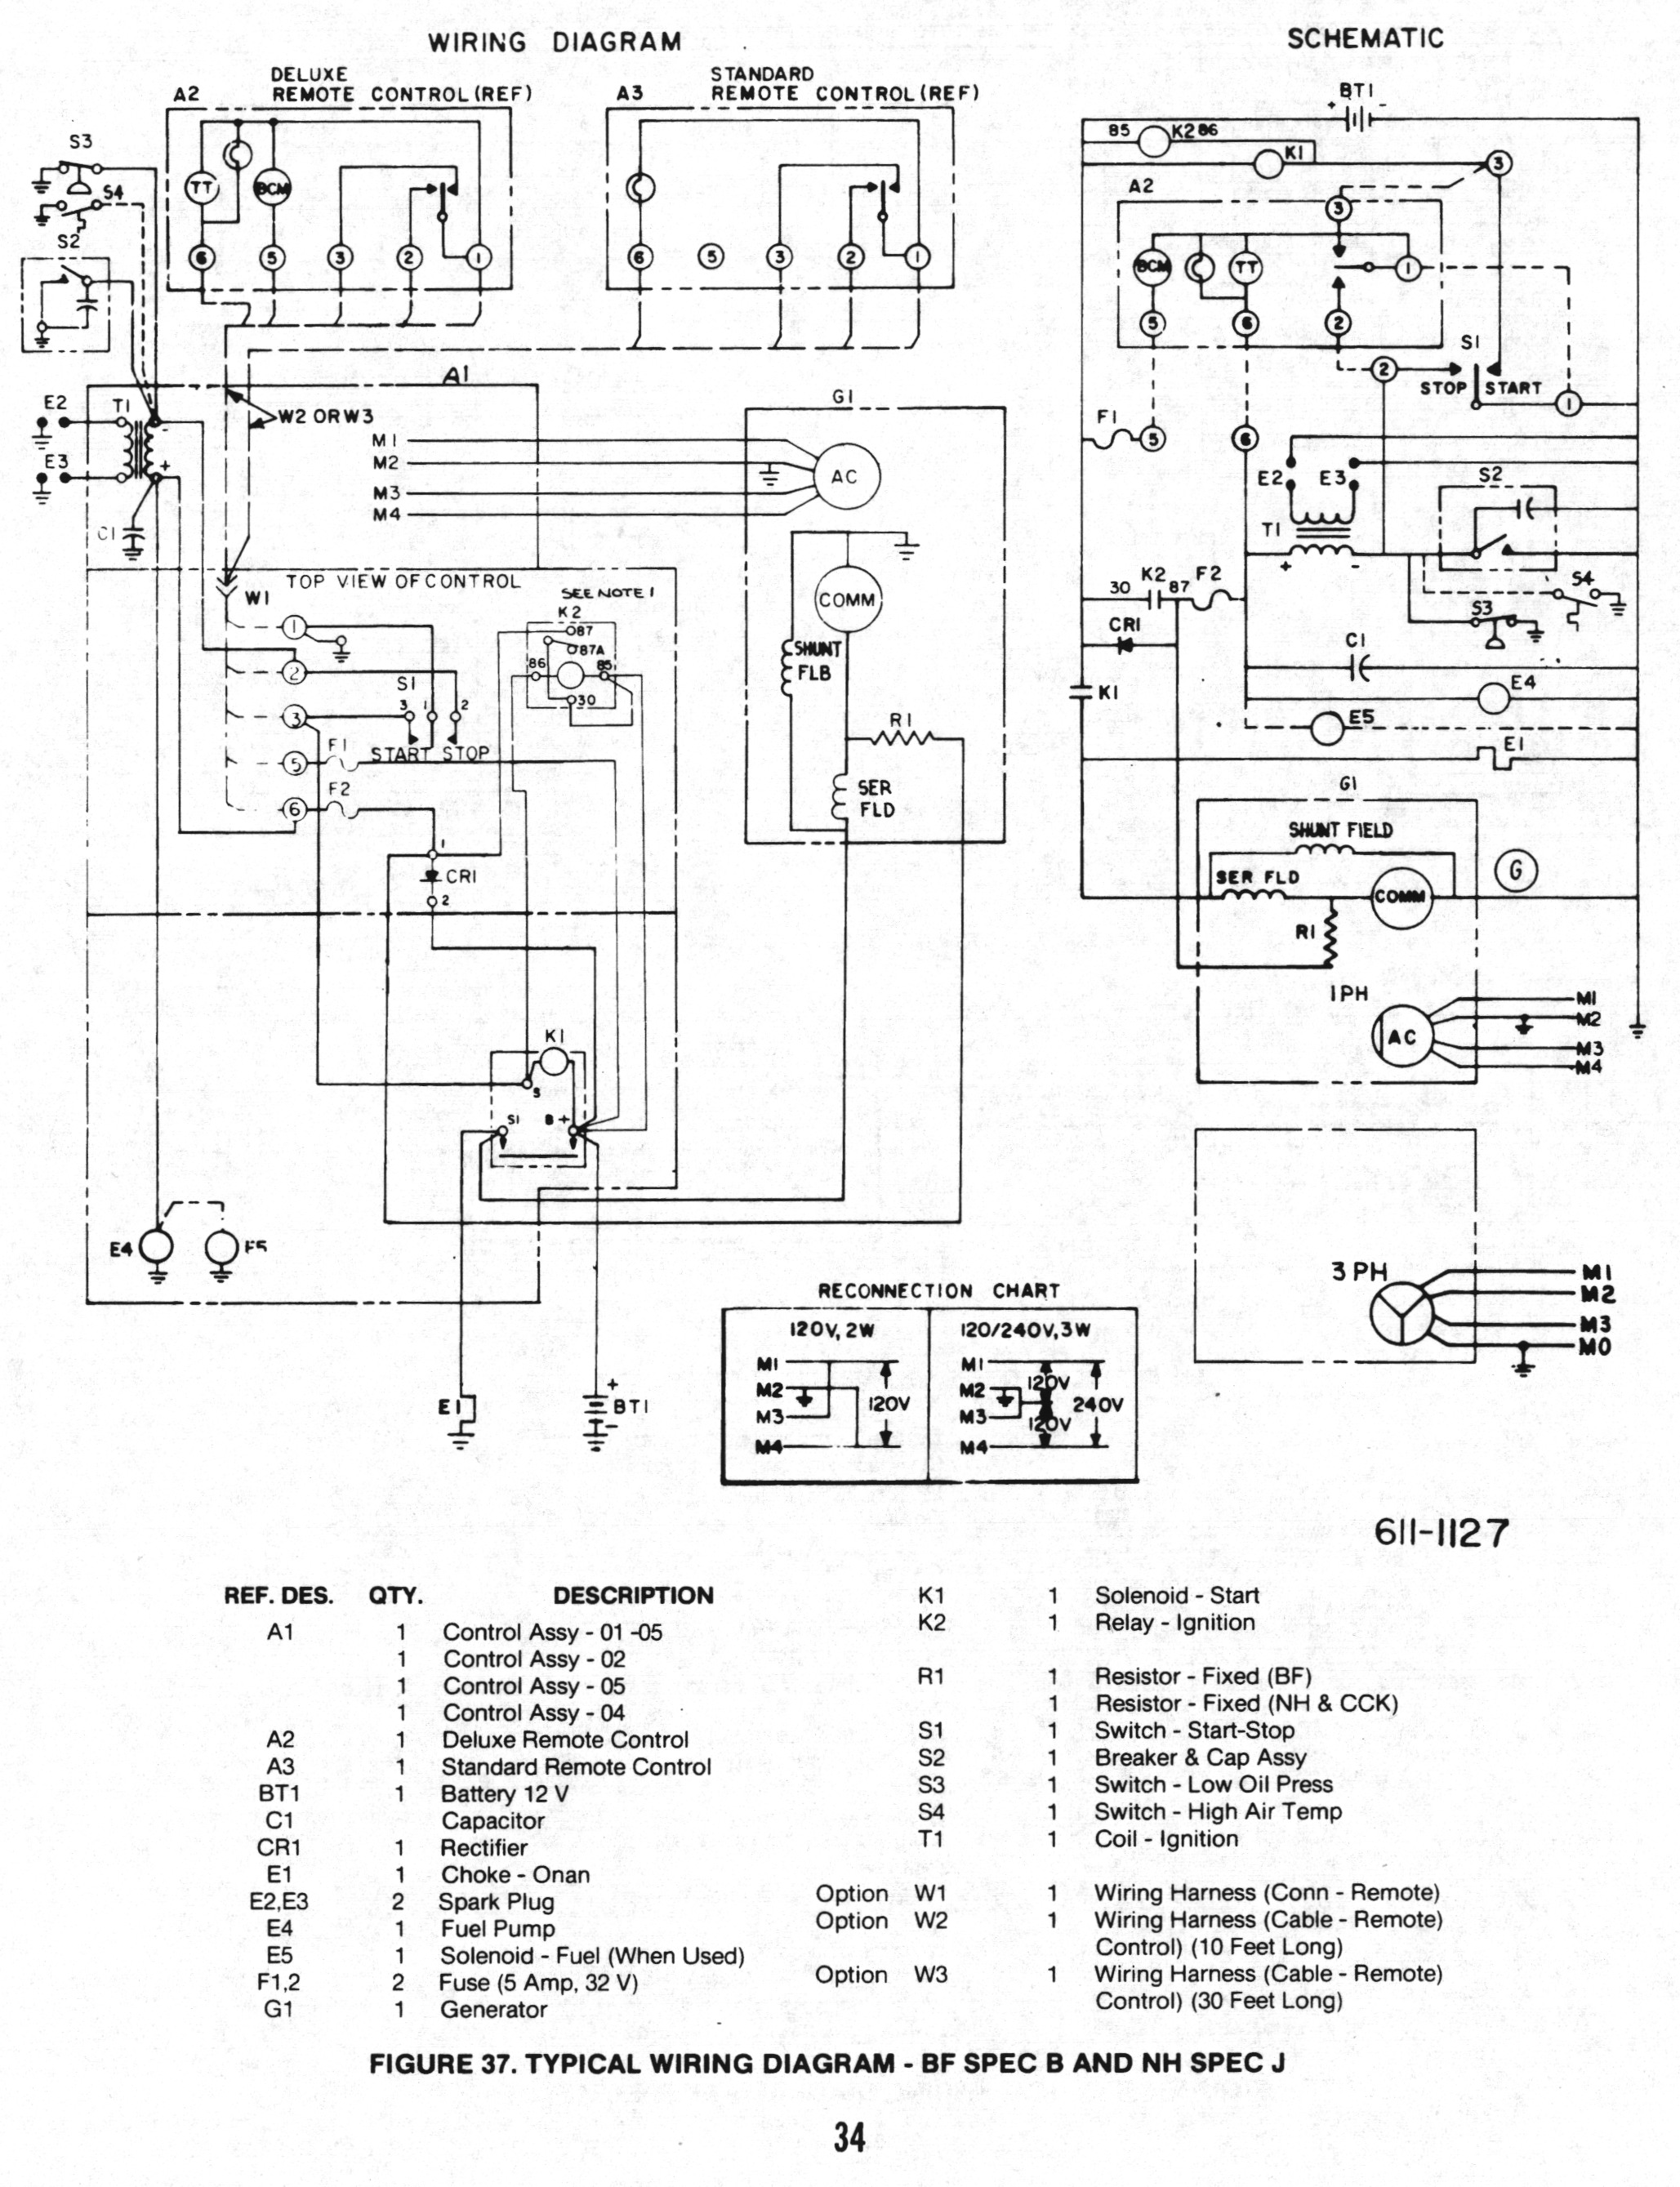 Onan Service Manual For Bf Bfa Bga Nh 900 Page 34